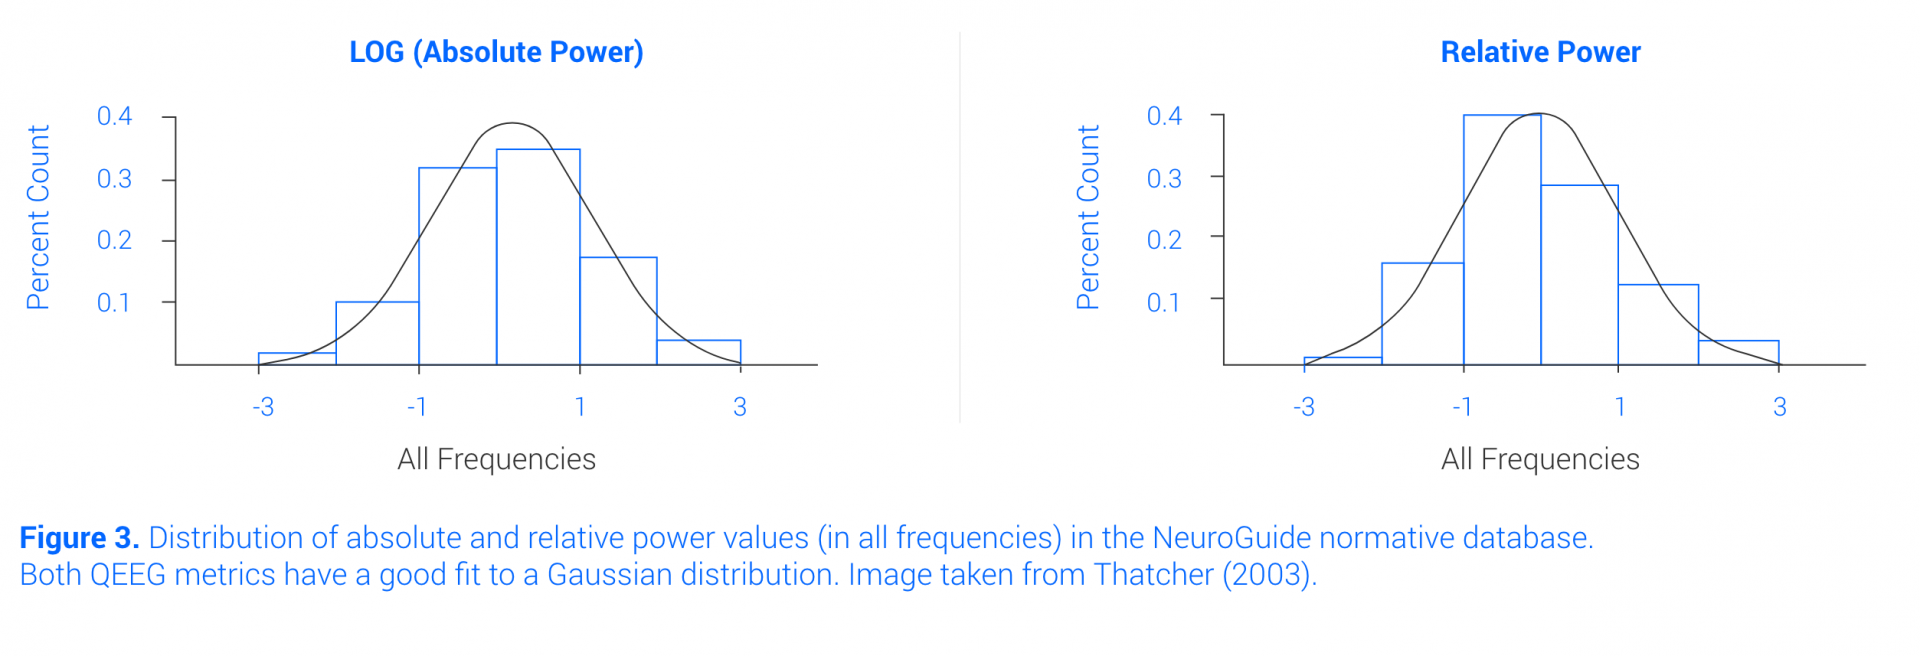 NeuroGuide normative database for qeeg